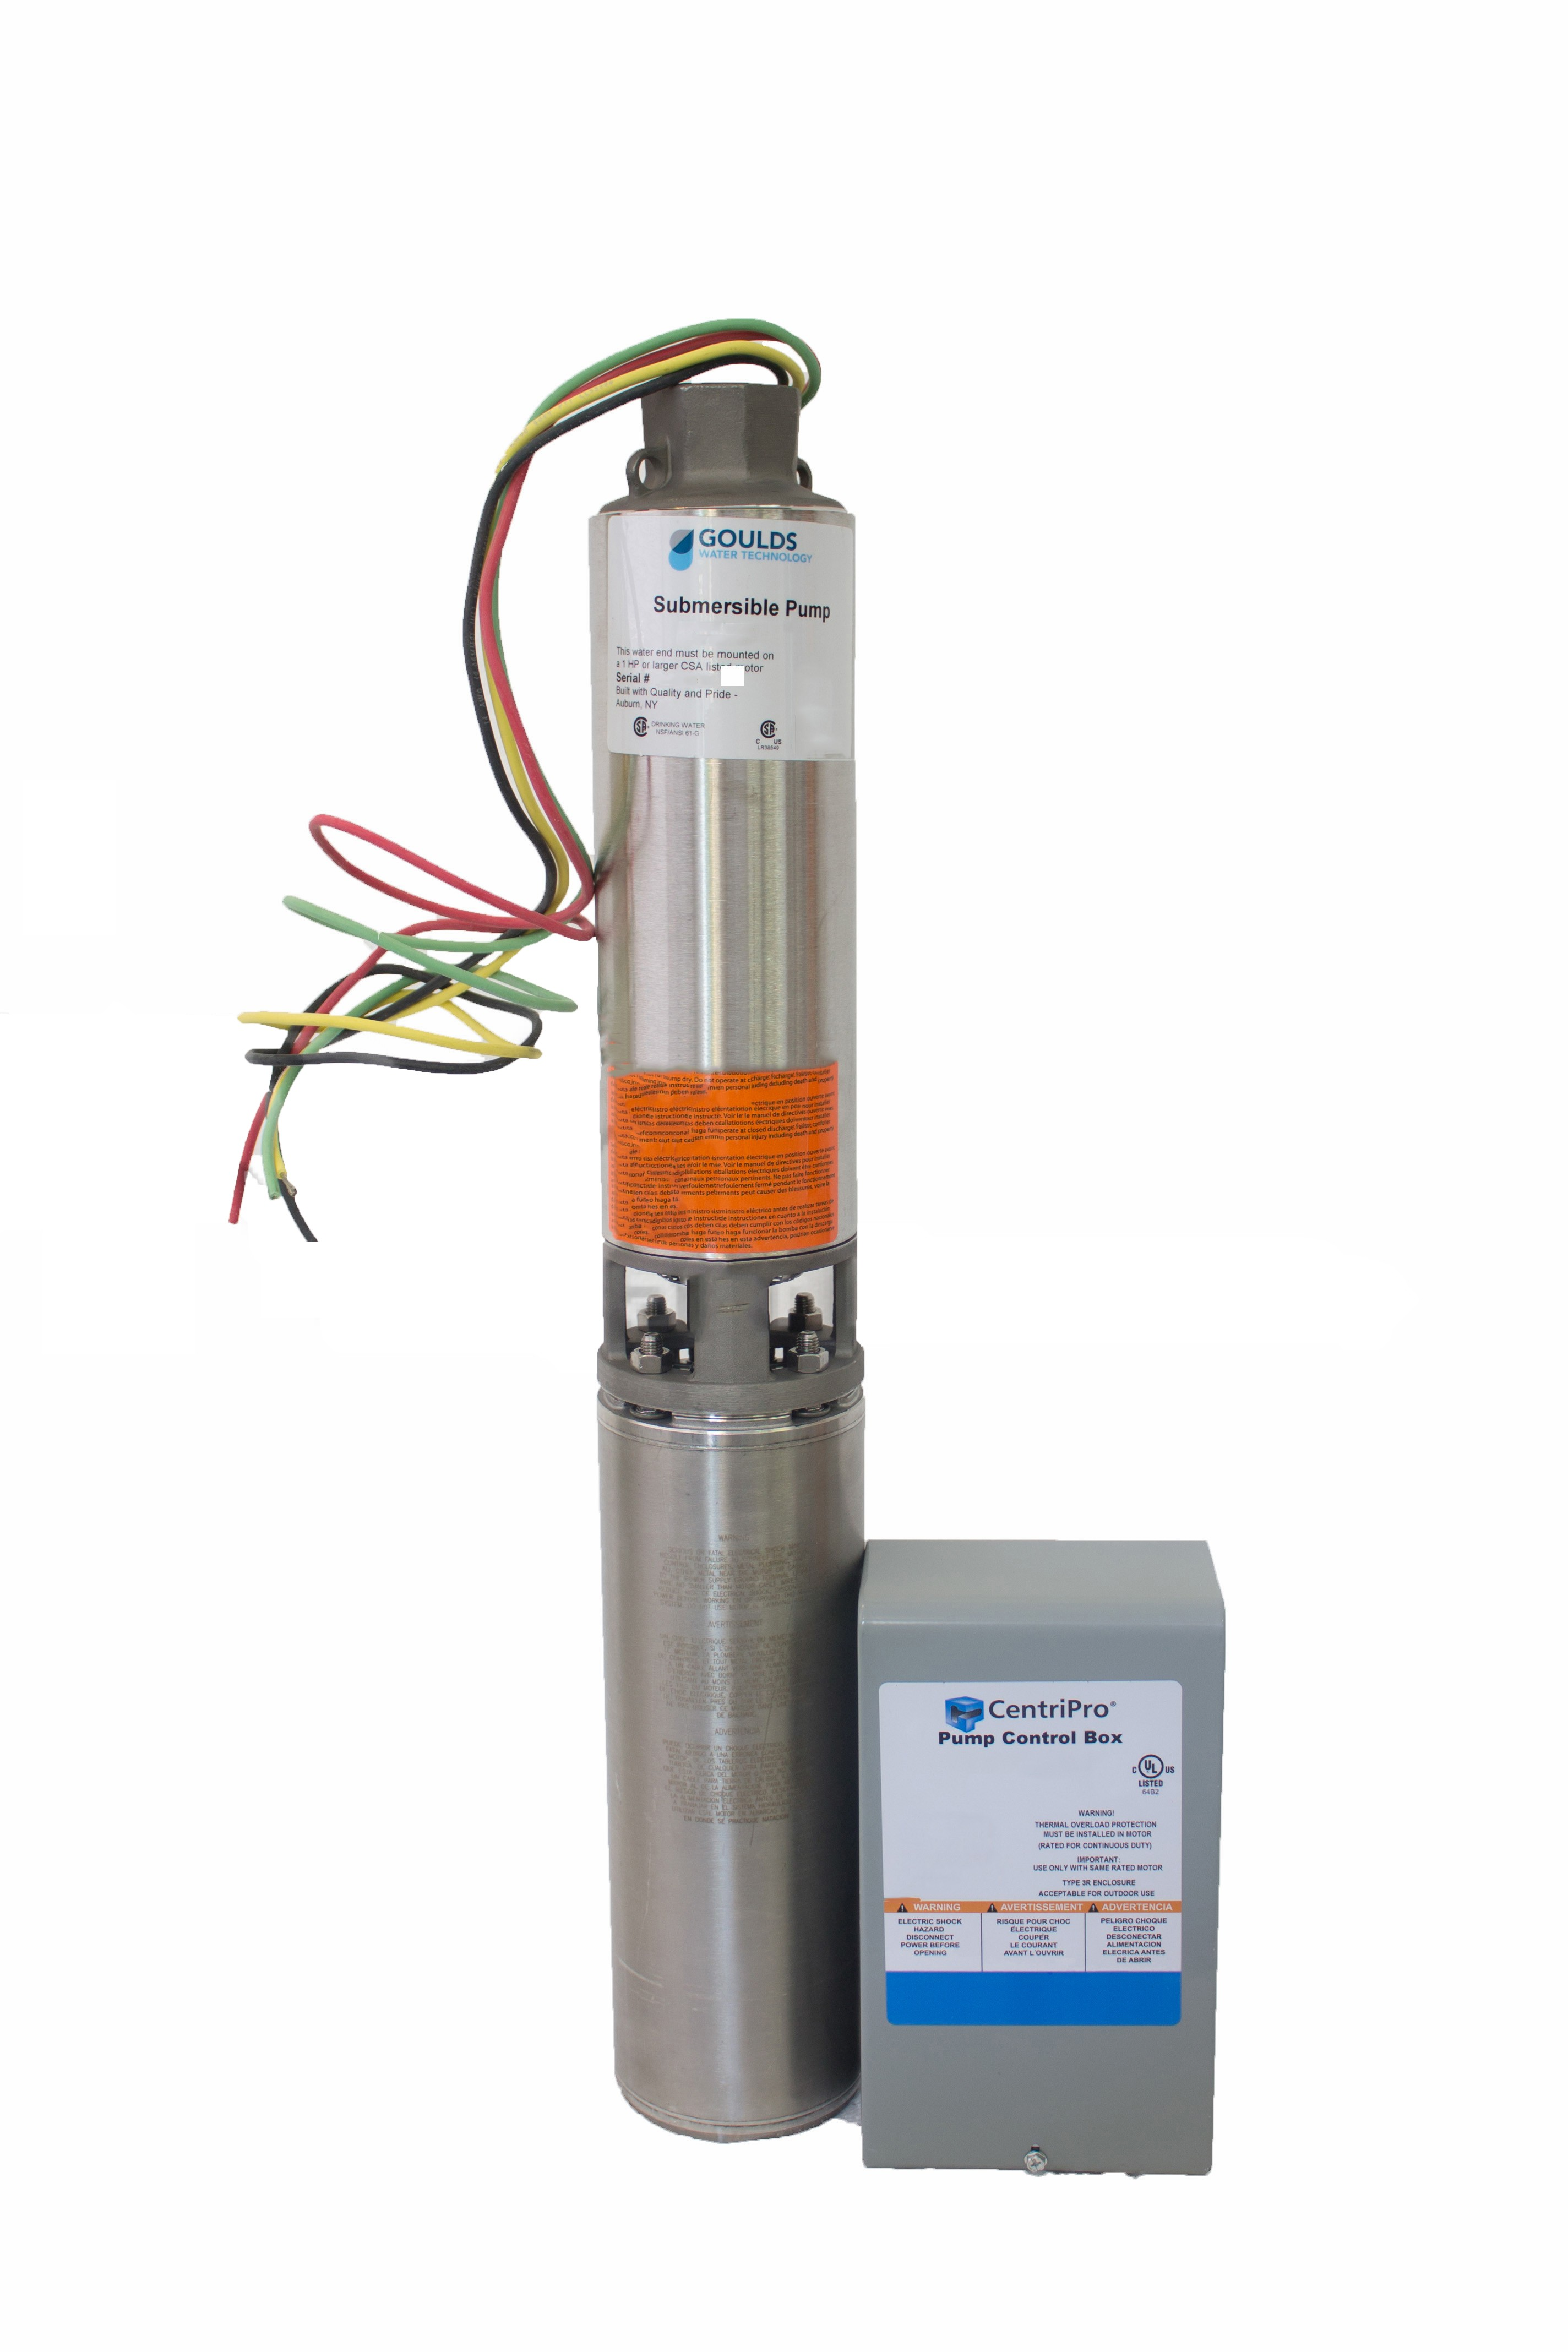 Submersible Pump Control Box Wiring Goulds 10gs Rc 10gpm 1 2hp 115v 3 Wire Submersible Well Of Submersible Pump Control Box Wiring